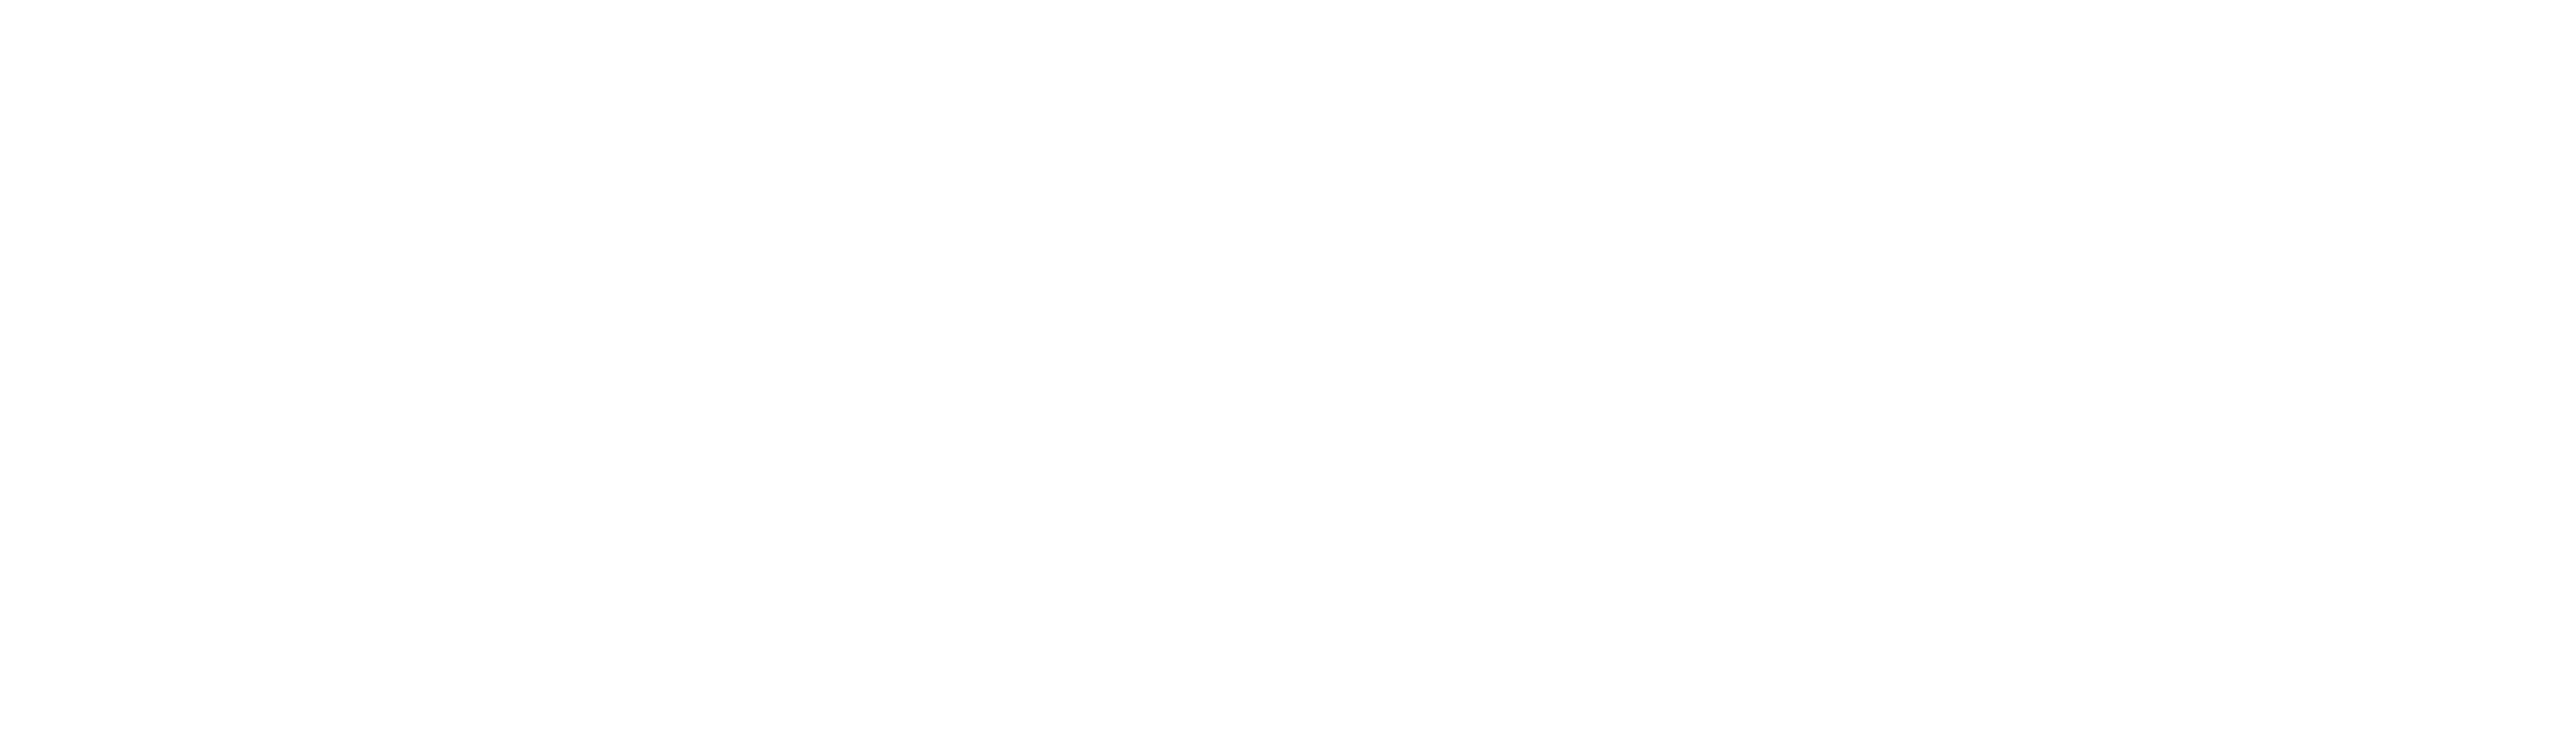 Rev Marketing